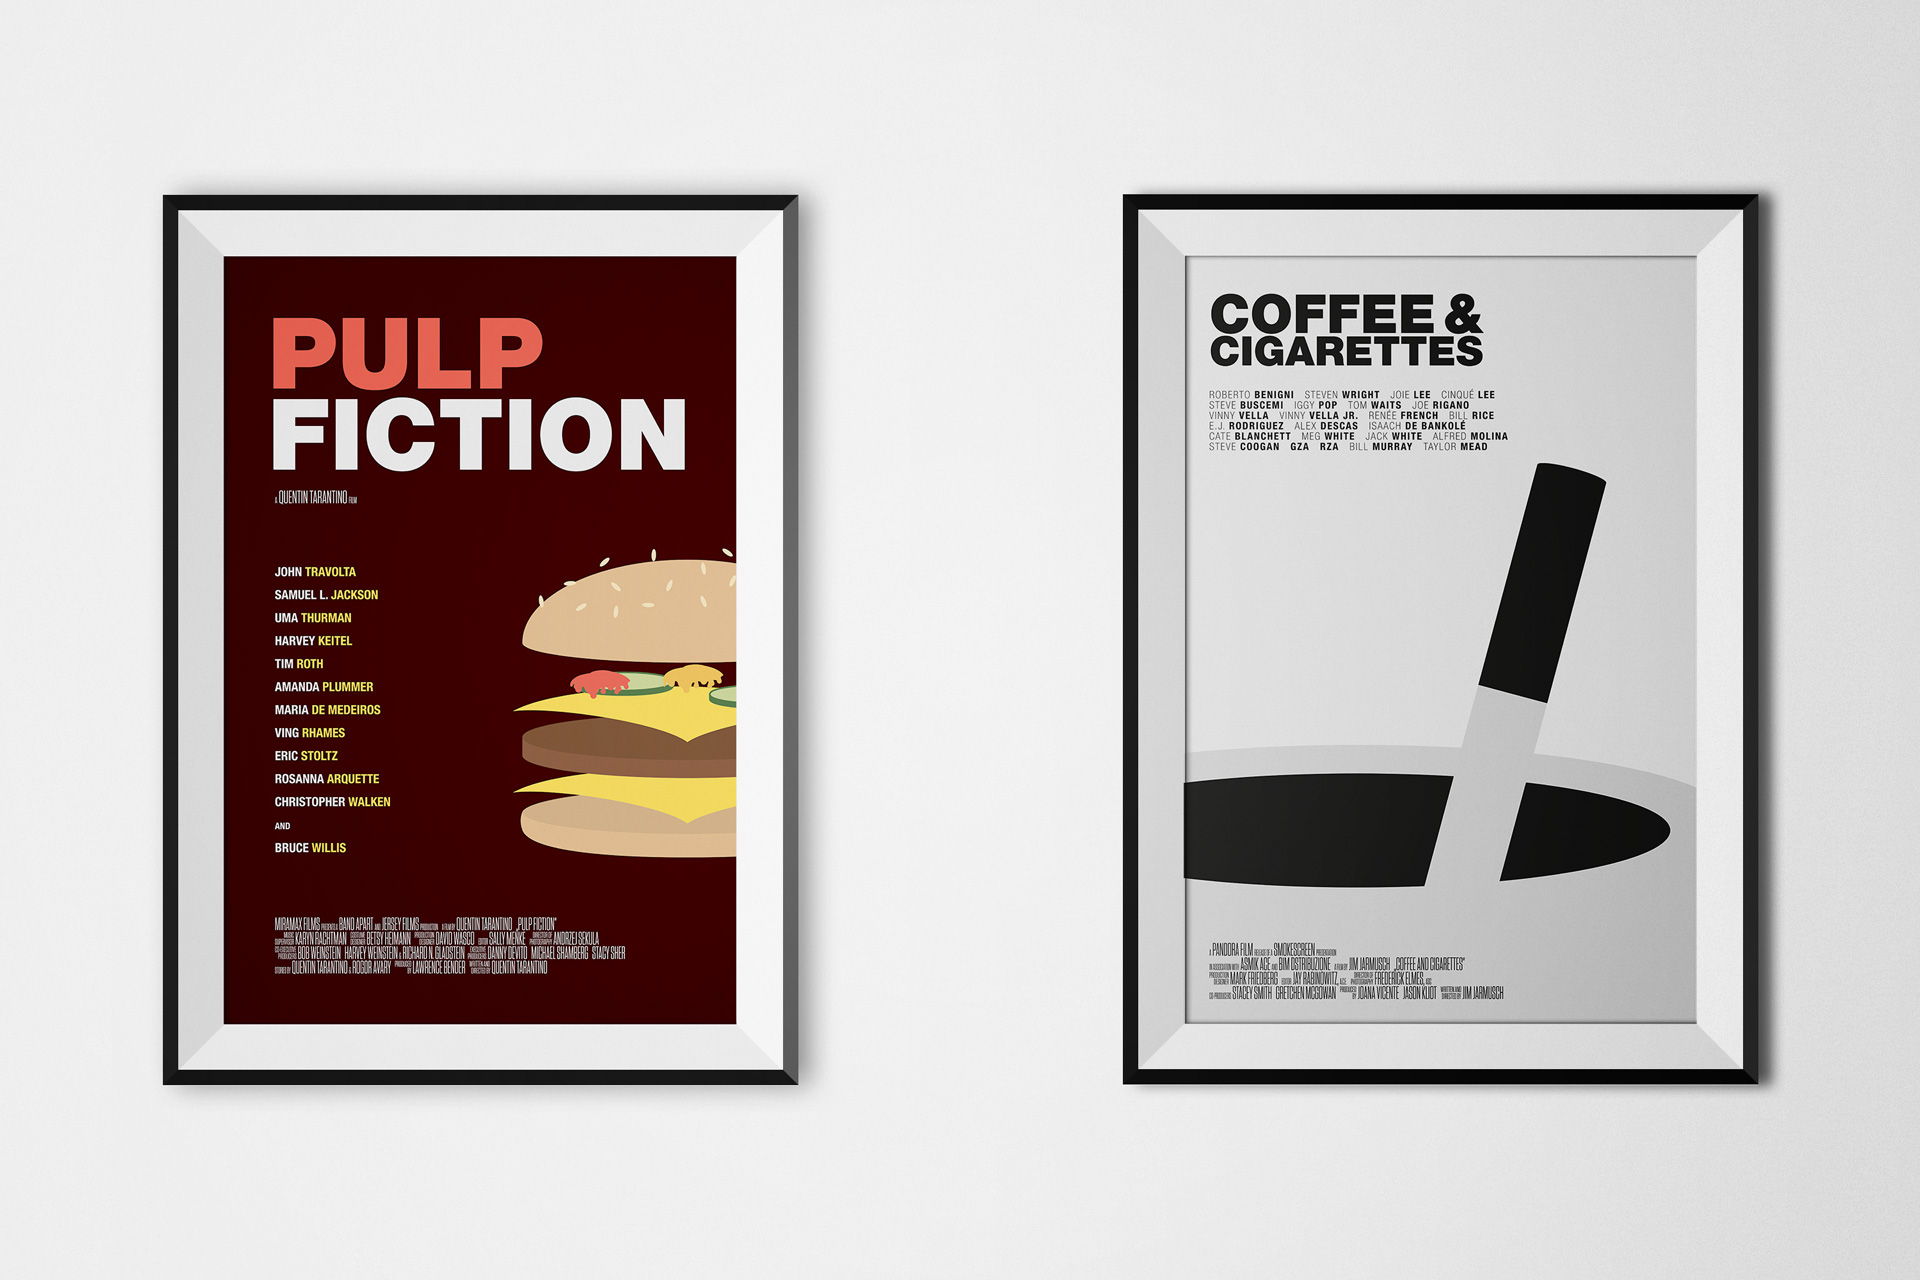 Pulp Fiction / Coffee & Cigarettes